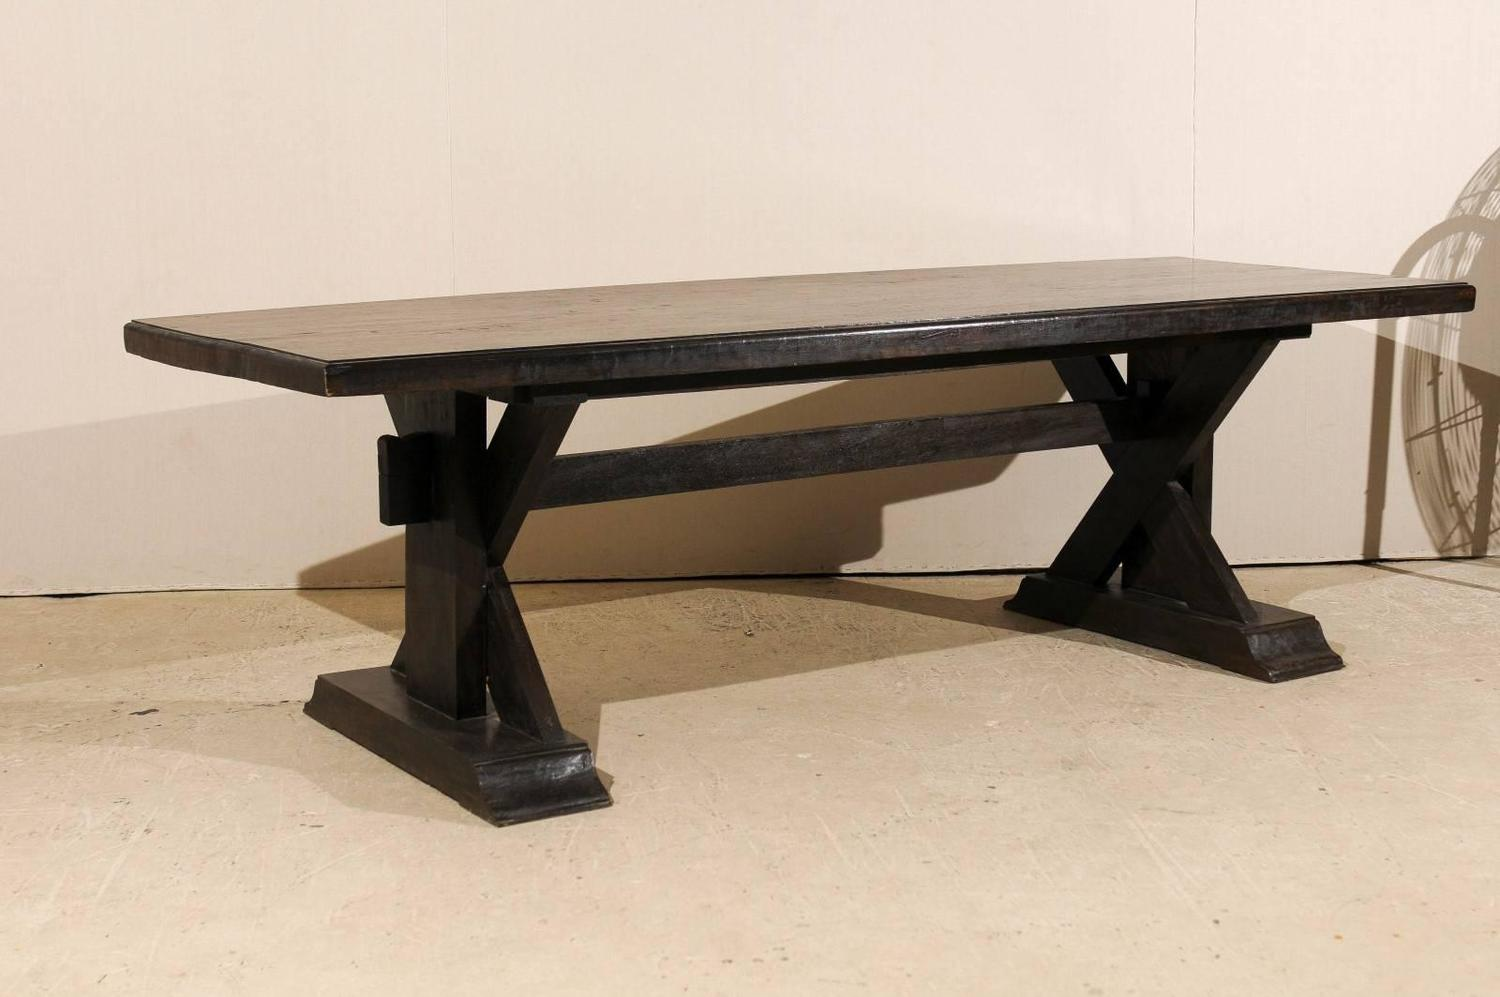 Teakwood trestle dining table with x frame for sale at 1stdibs for 5 foot dining room table